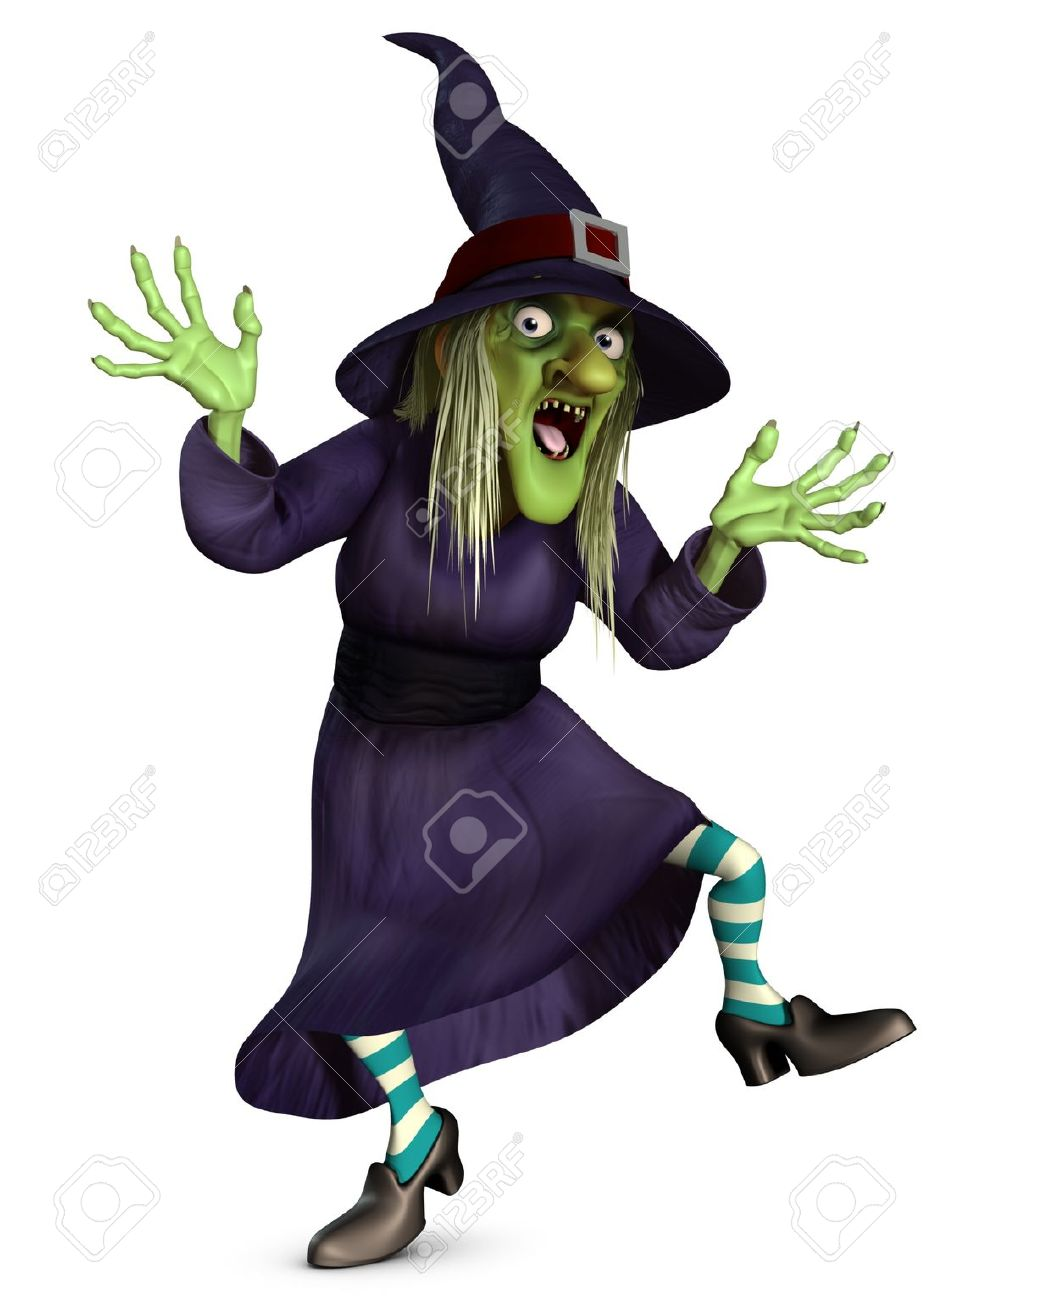 1037x1300 3d Cartoon Halloween Crazy Witch Stock Photo, Picture And Royalty